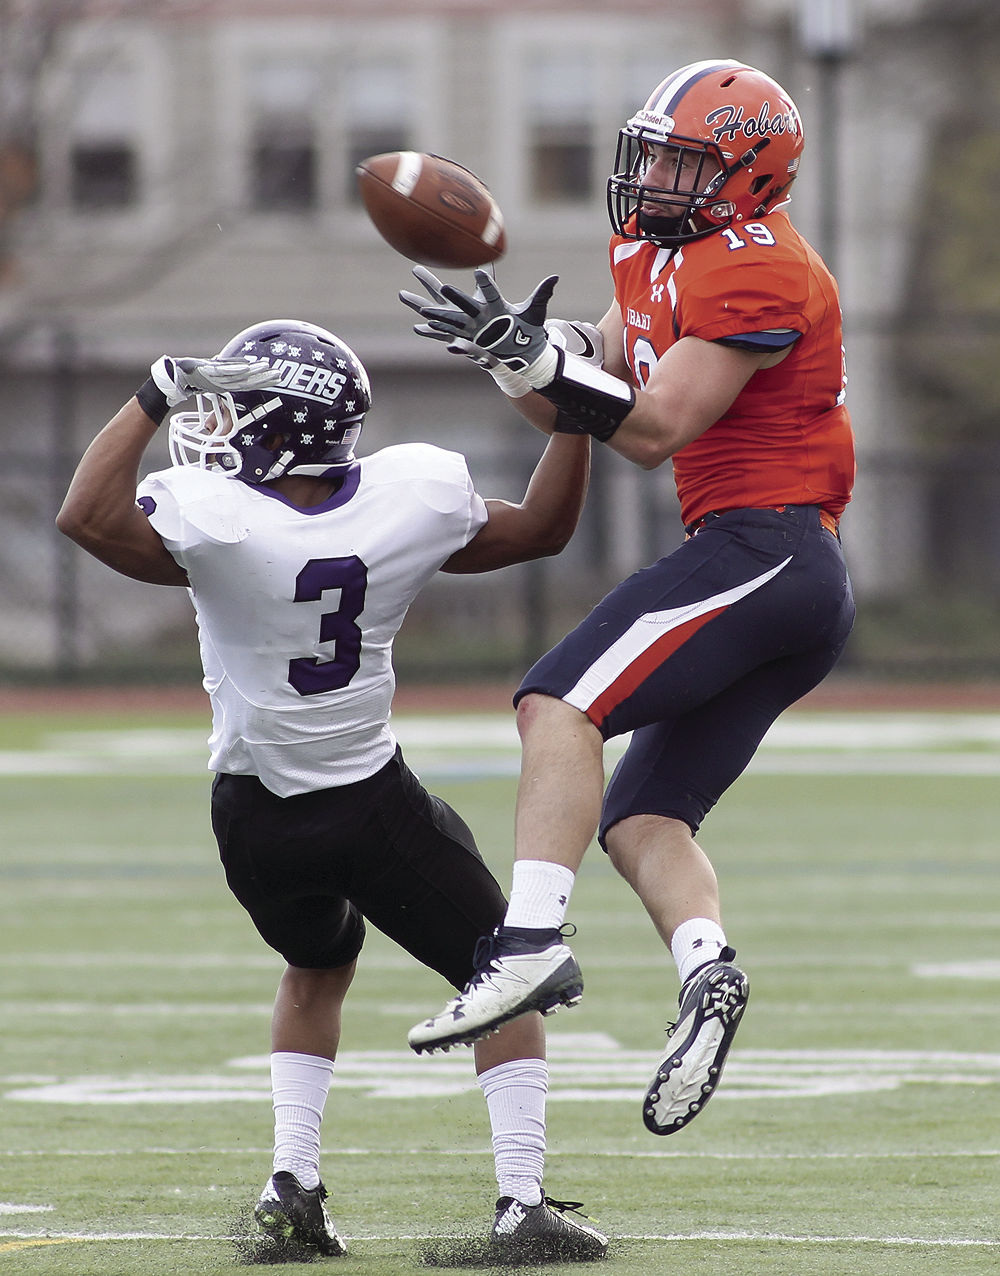 College Football Mount Union Pulls Away For 38 21 Win Over Statesmen Sports Fltimes Com